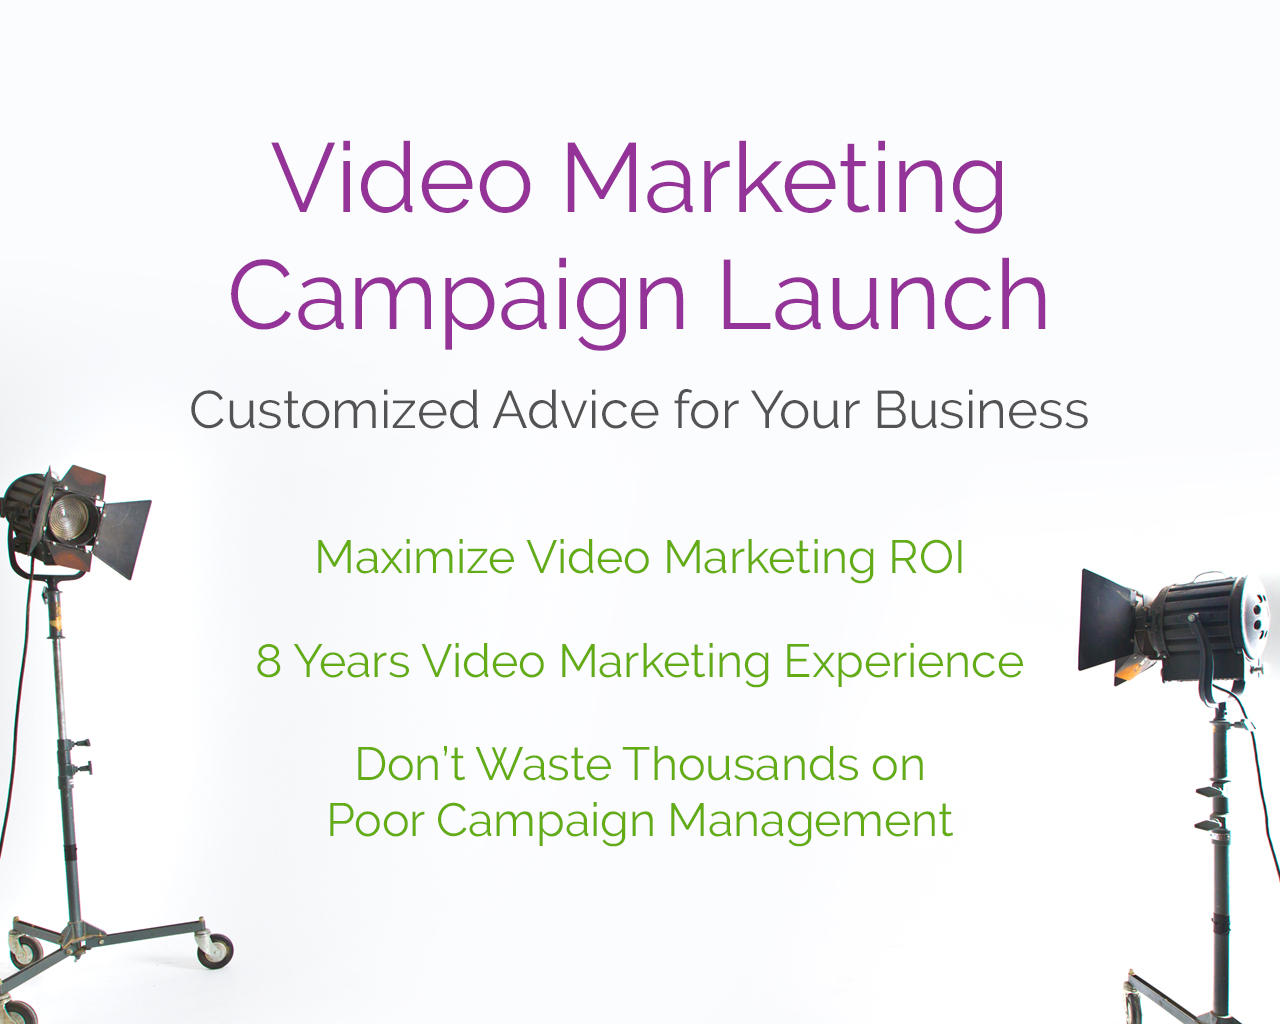 Video Marketing Campaign Planning by frogjump - 107028